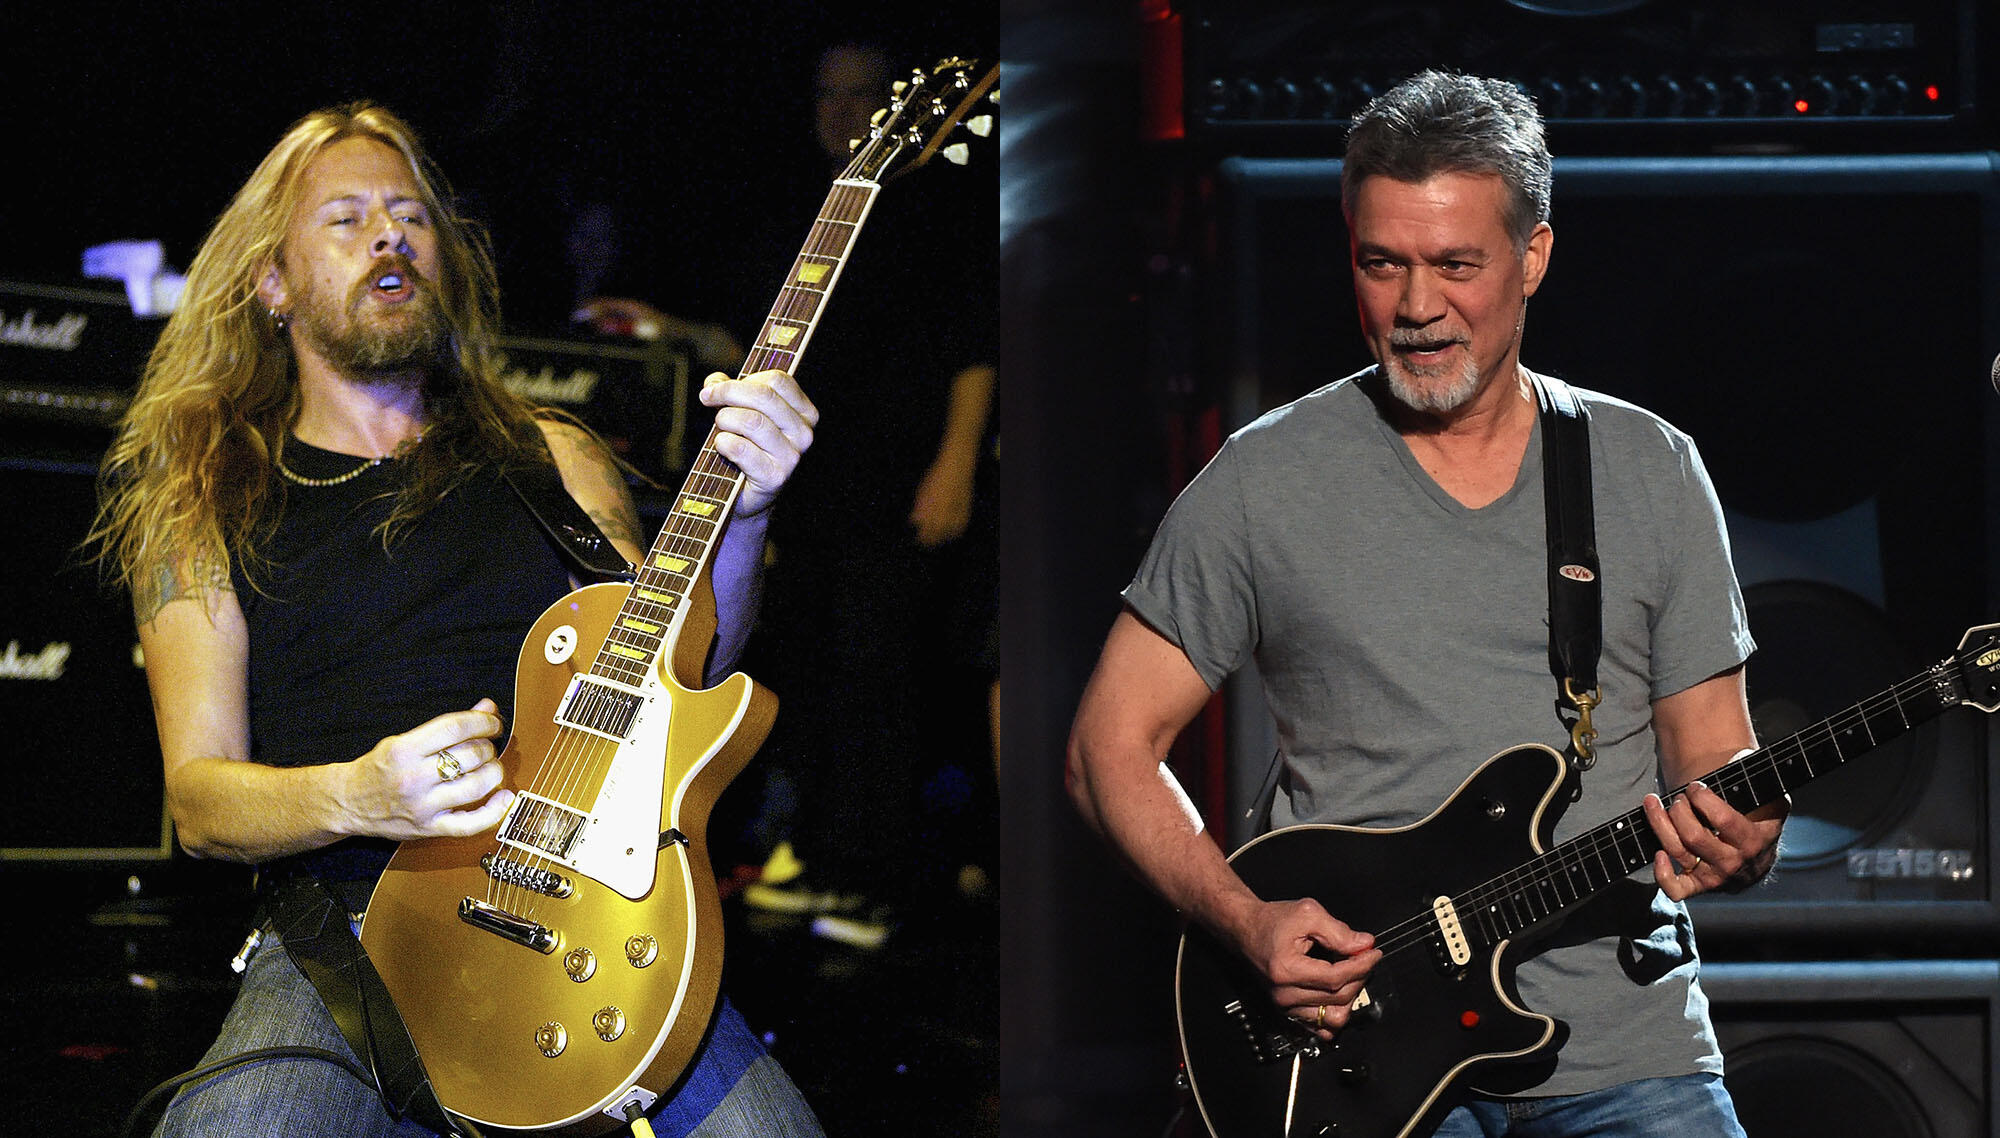 Jerry Cantrell Came Home To A Huge Surprise After '91 Tour With Van Halen